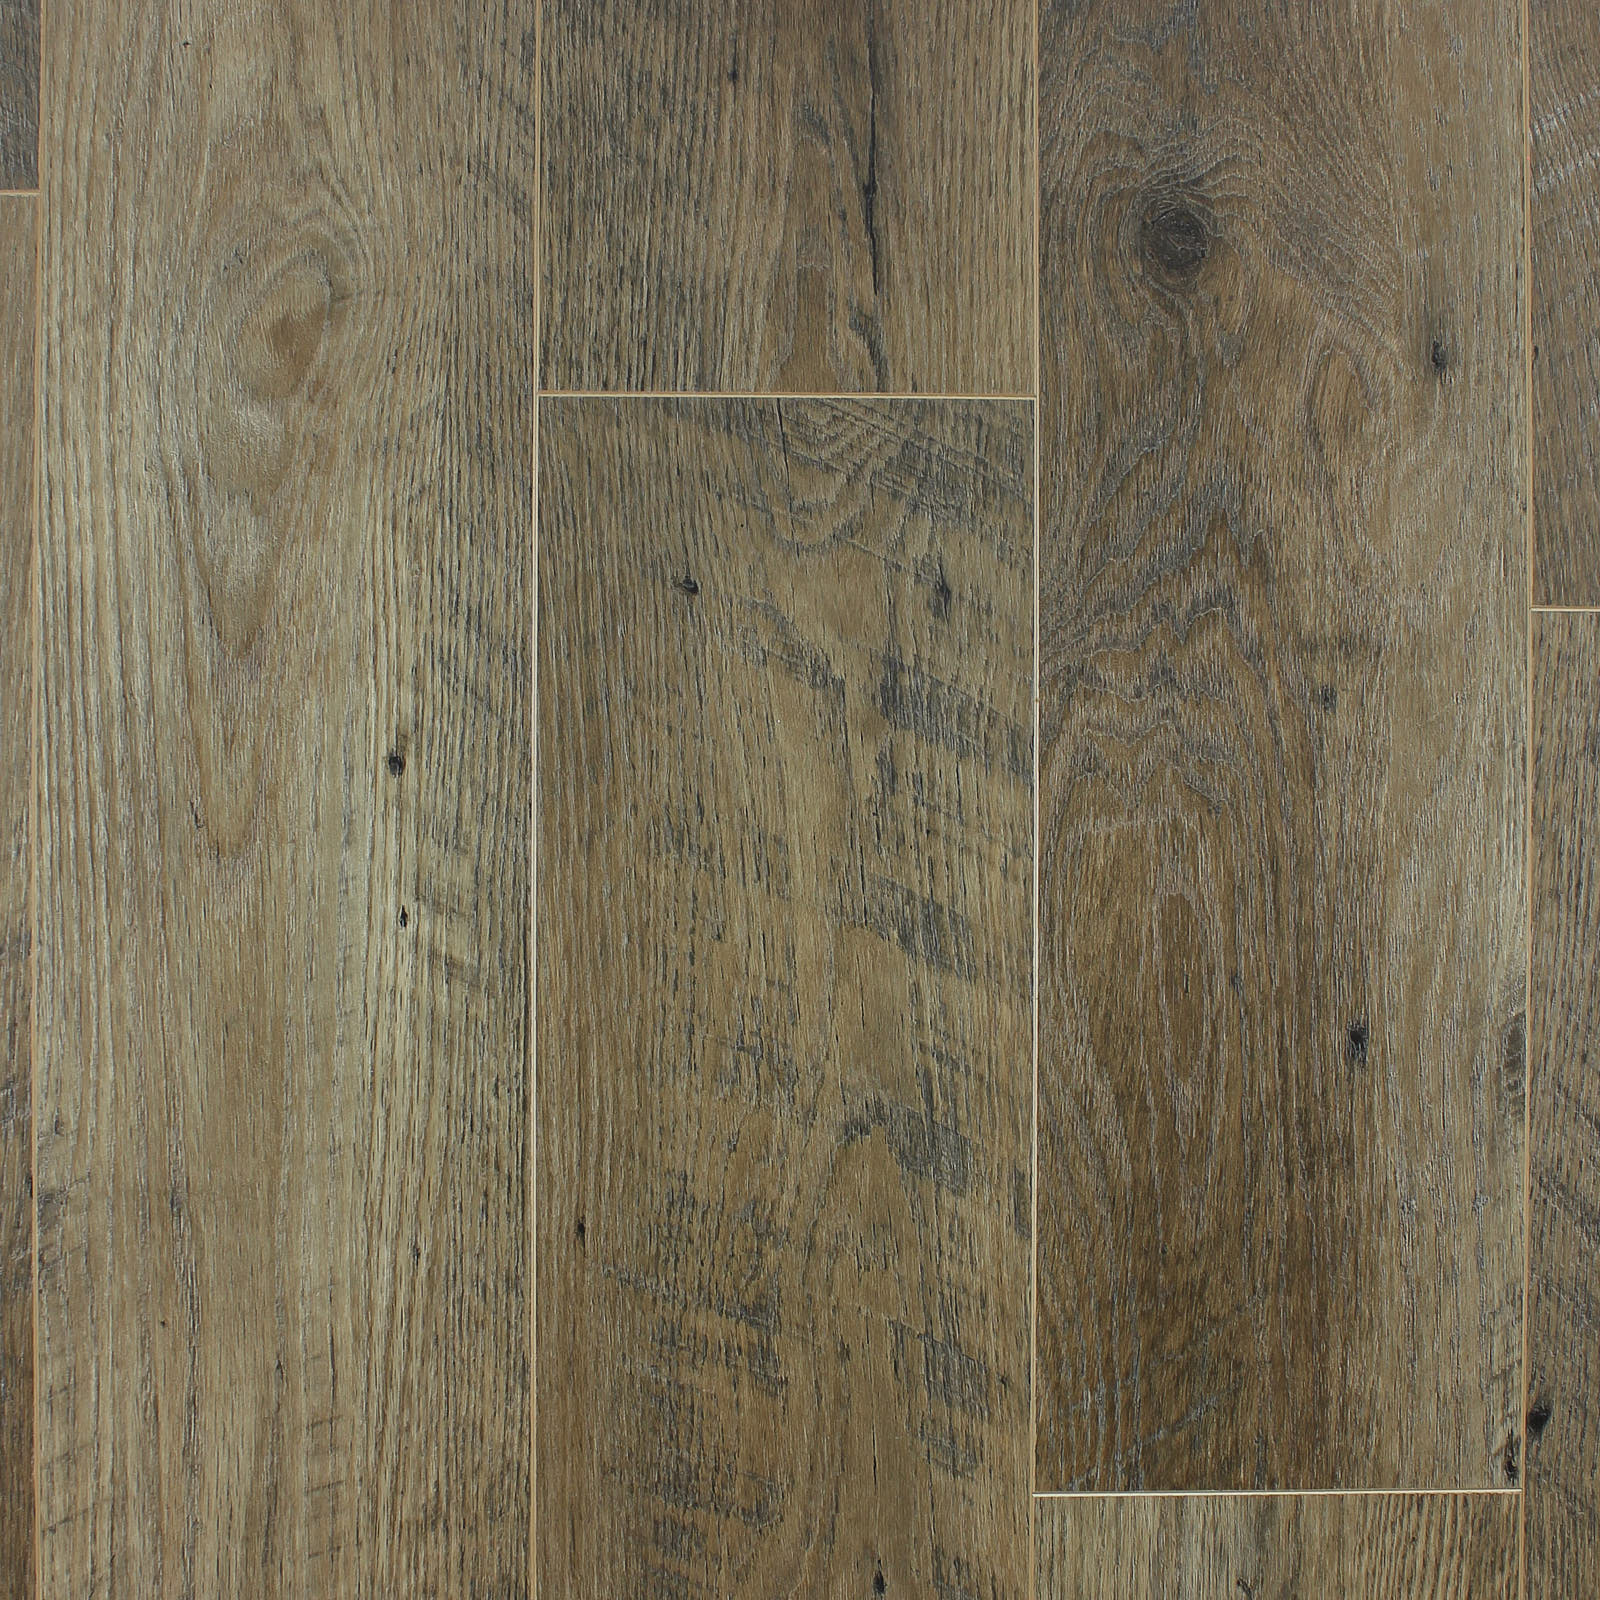 Northcreek Bentley Brown Rigid Core Vinyl Plank Flooring